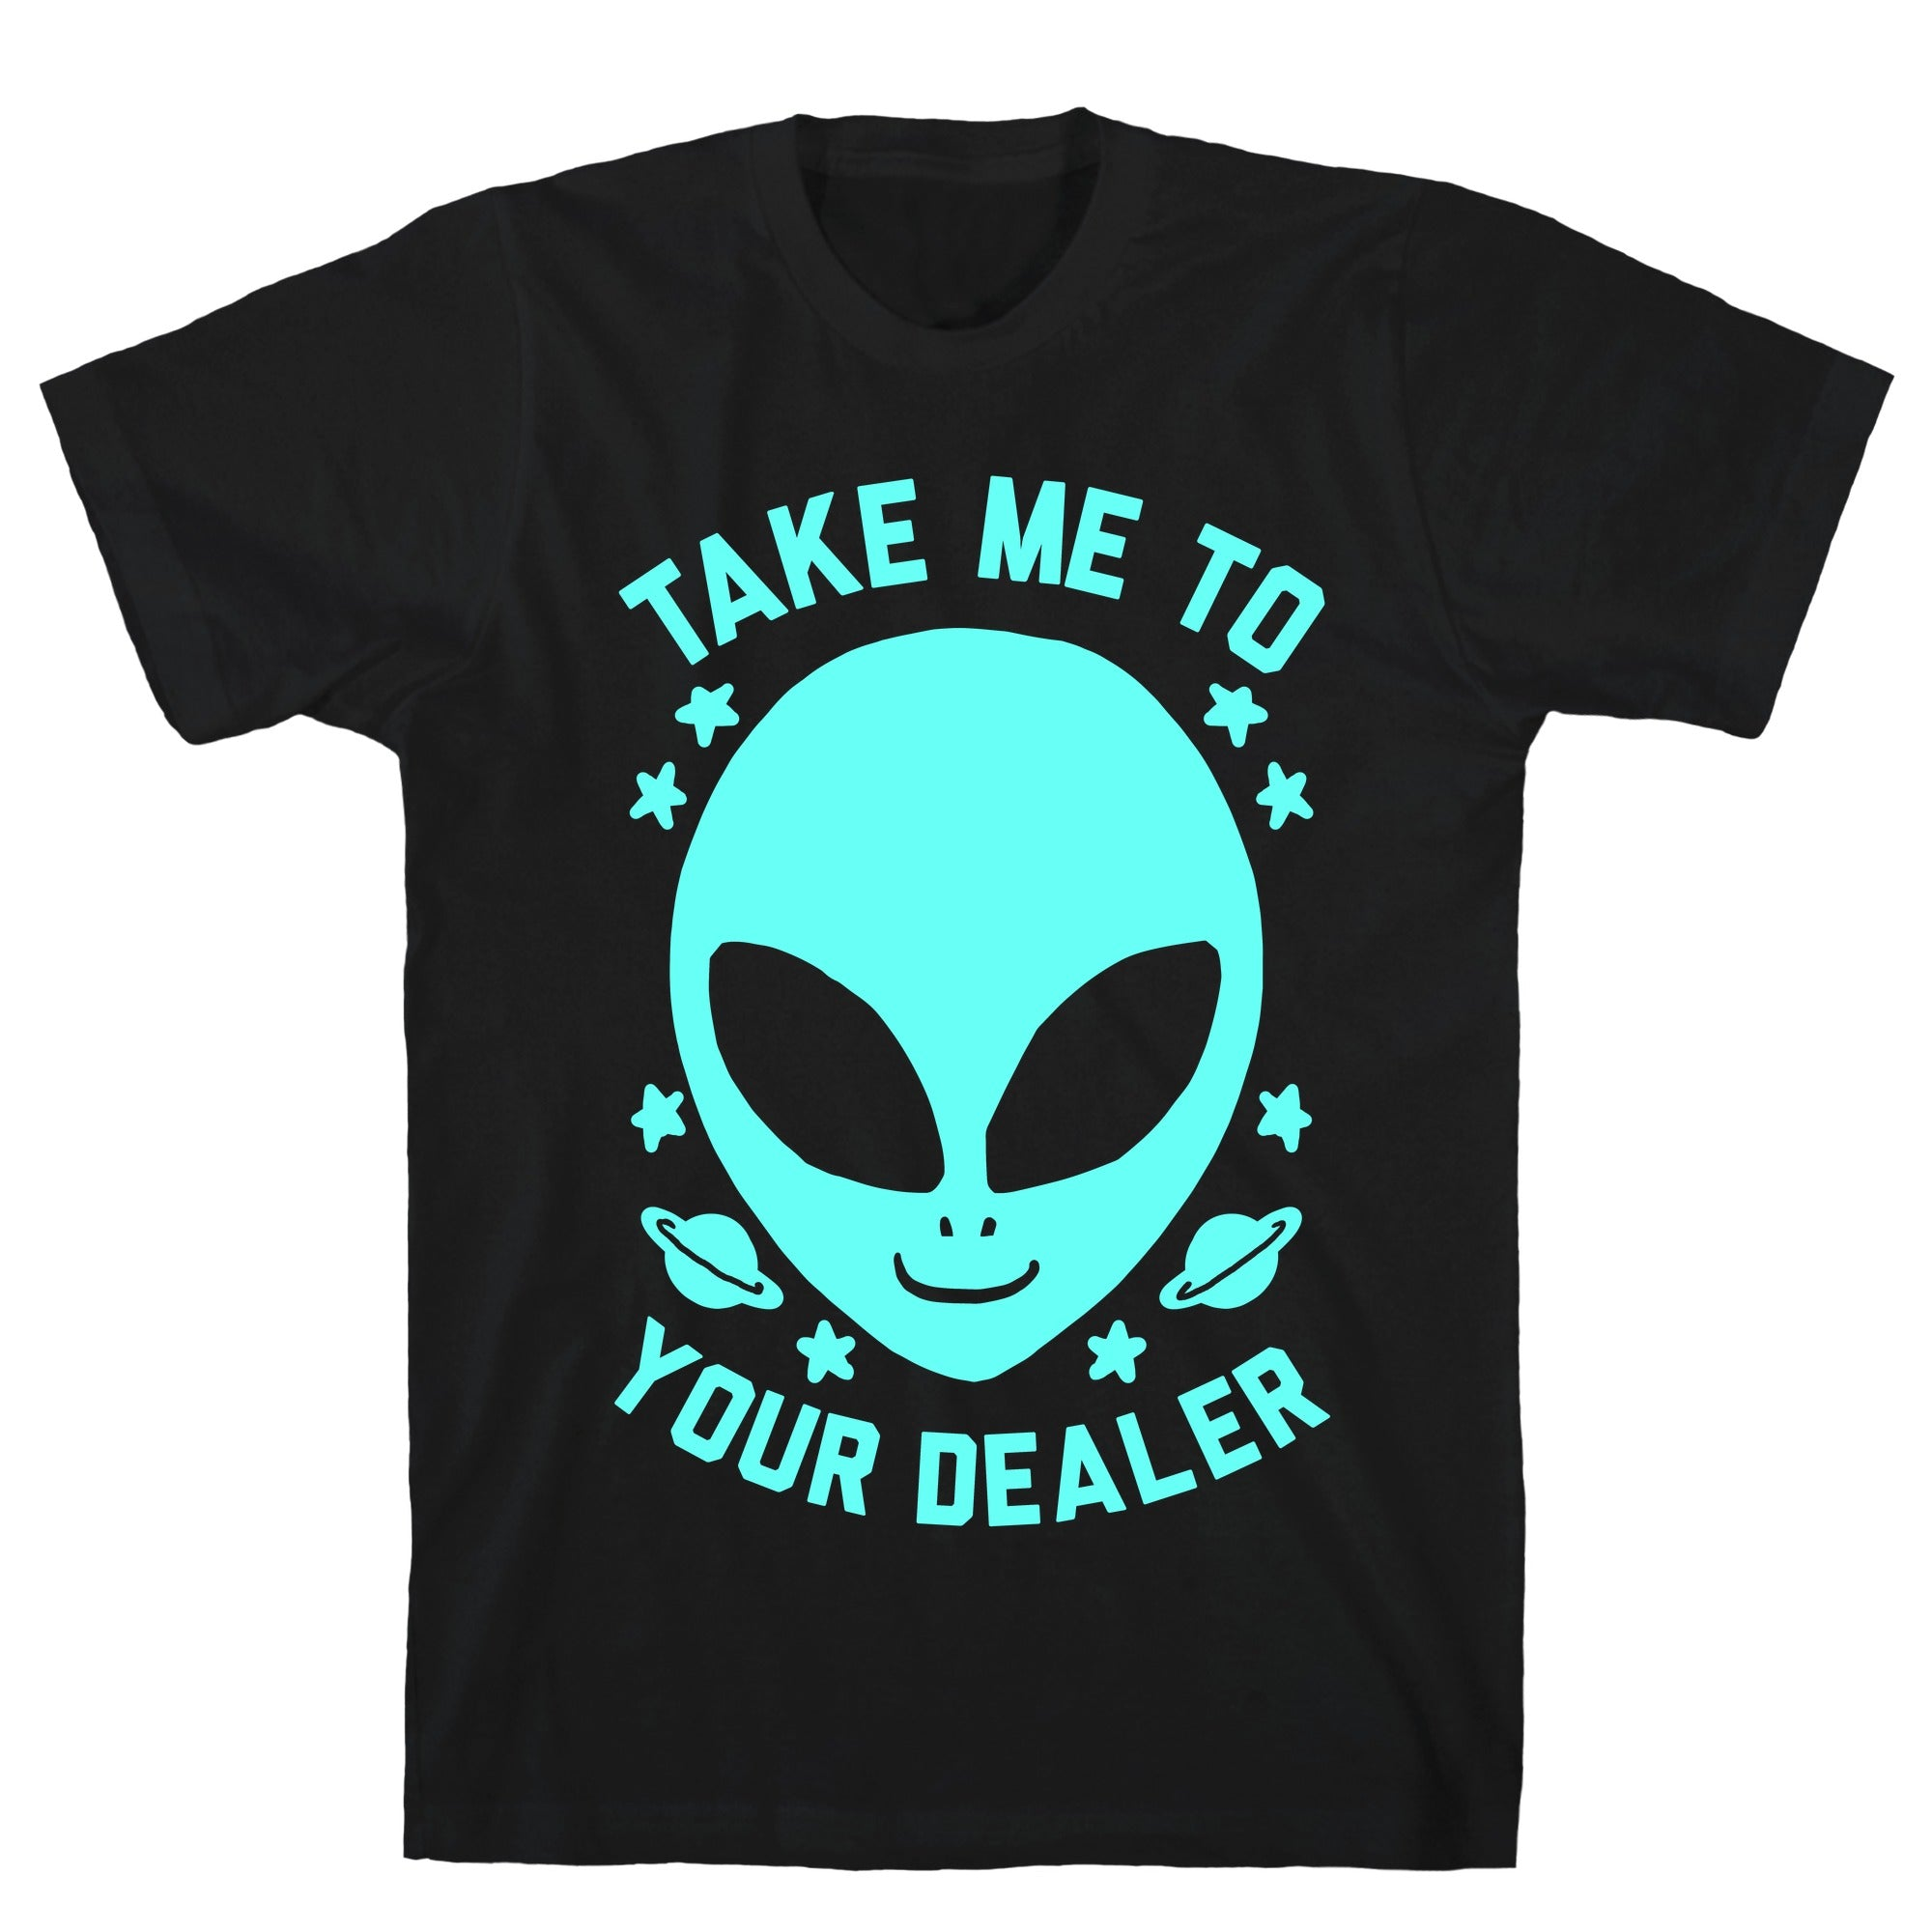 Take Me To Your Dealer Black Unisex Cotton Tee by LookHUMAN